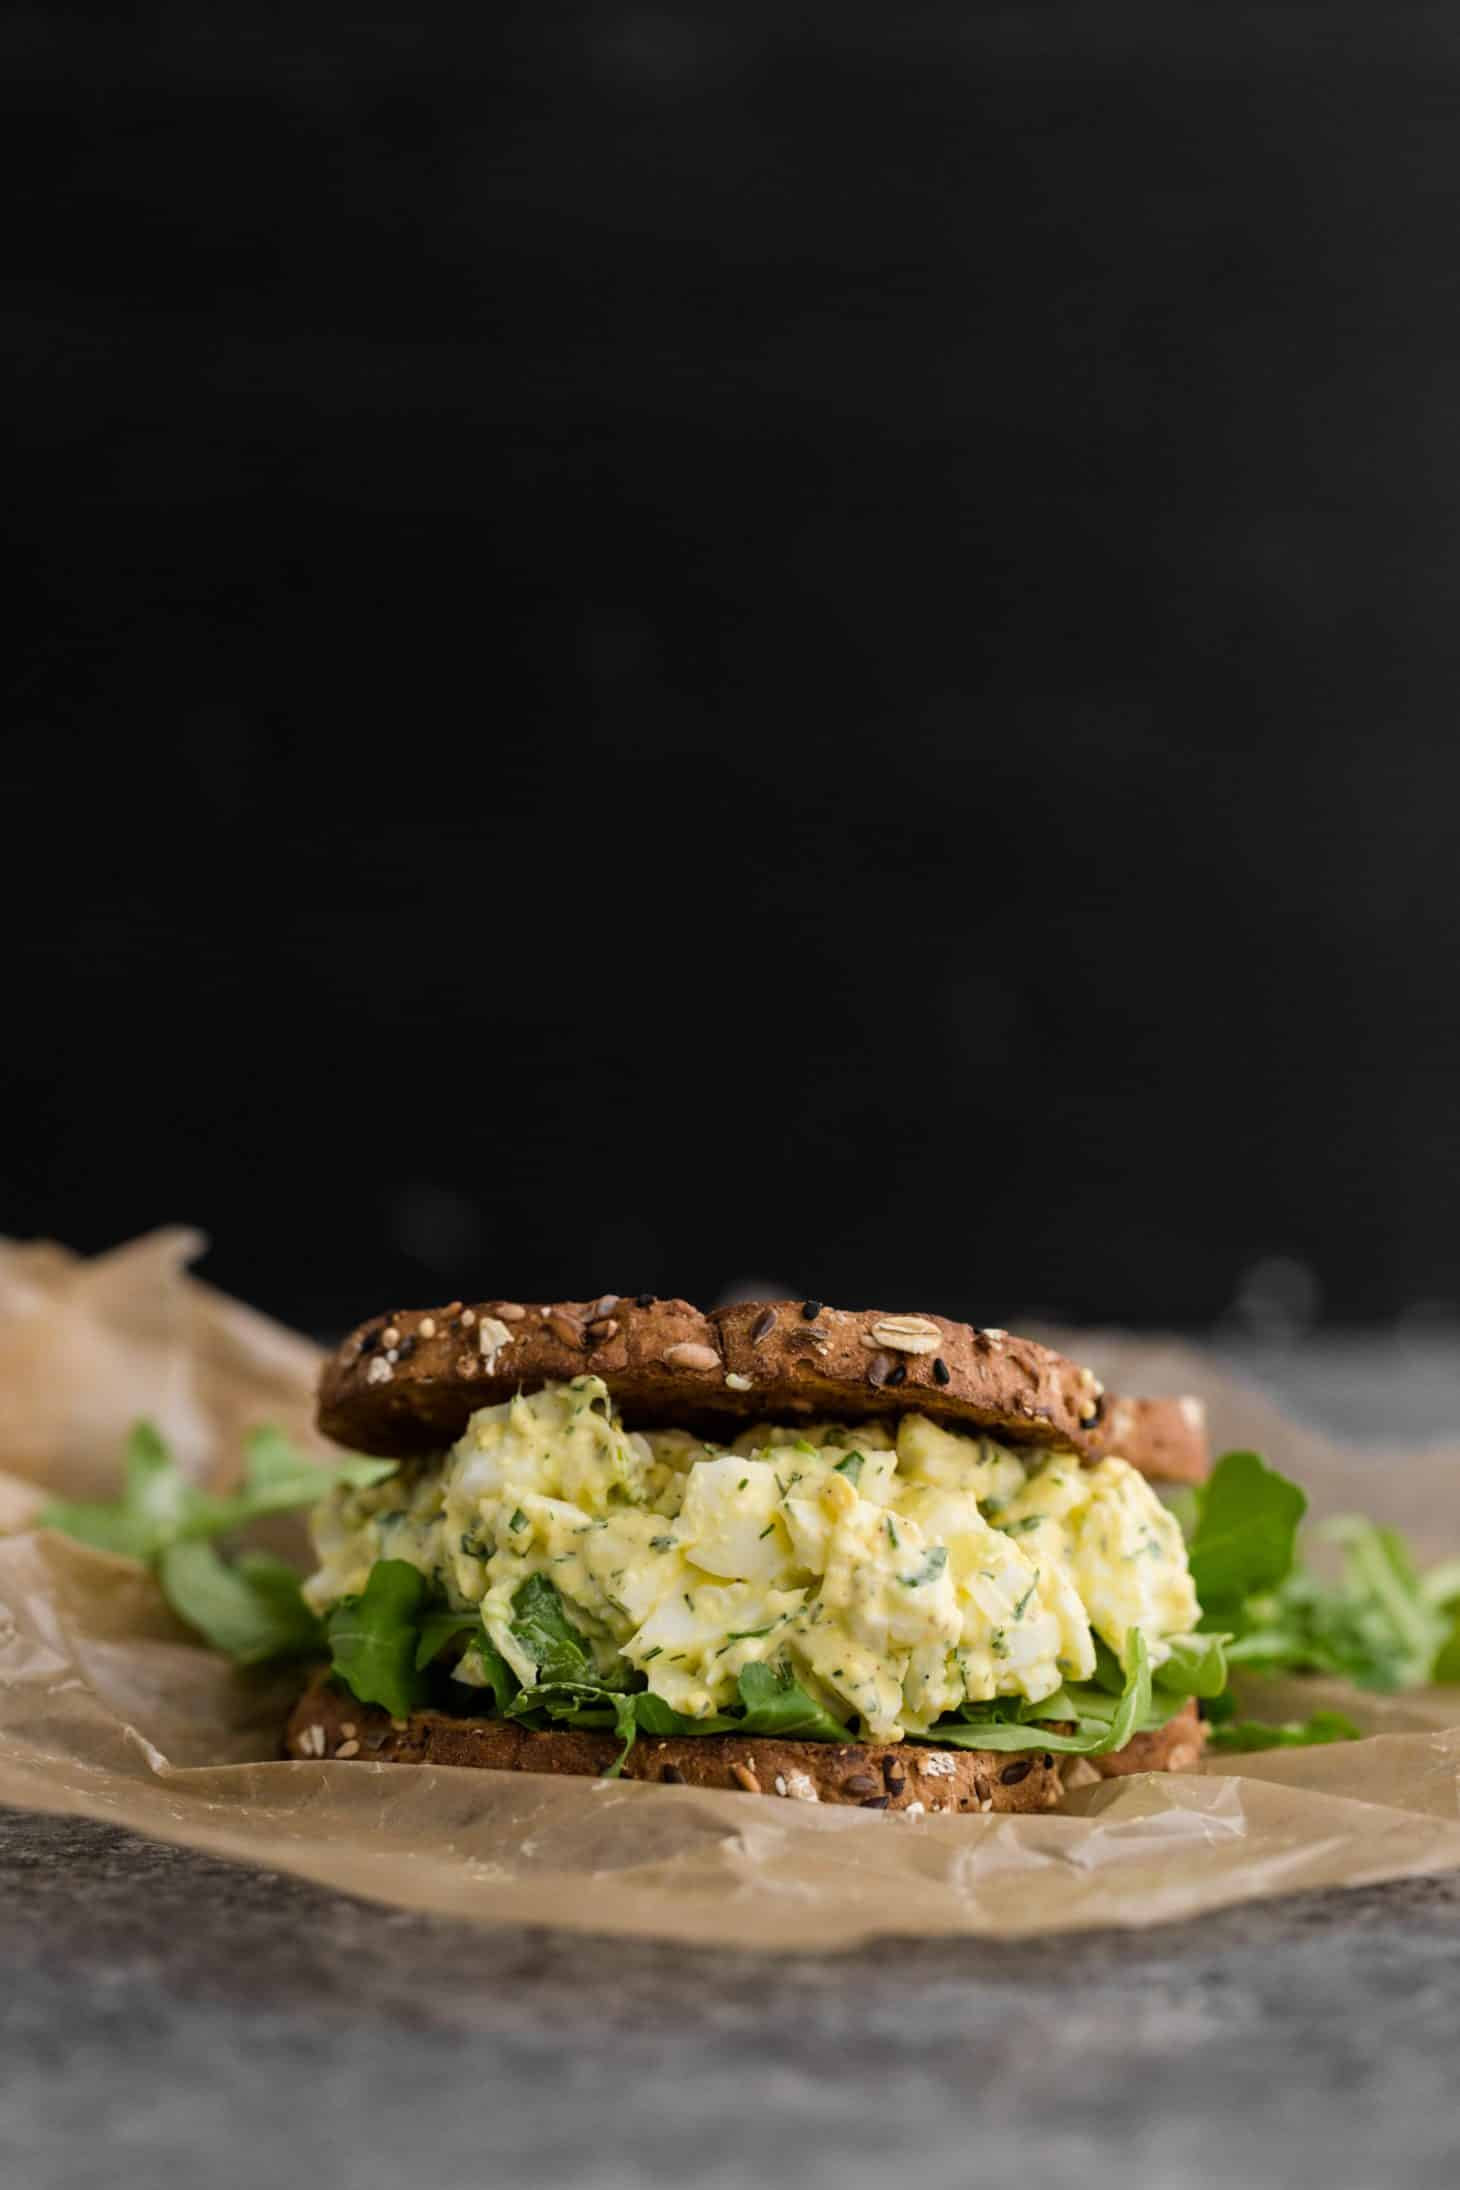 Easy Egg Salad Sandwich with Herbs